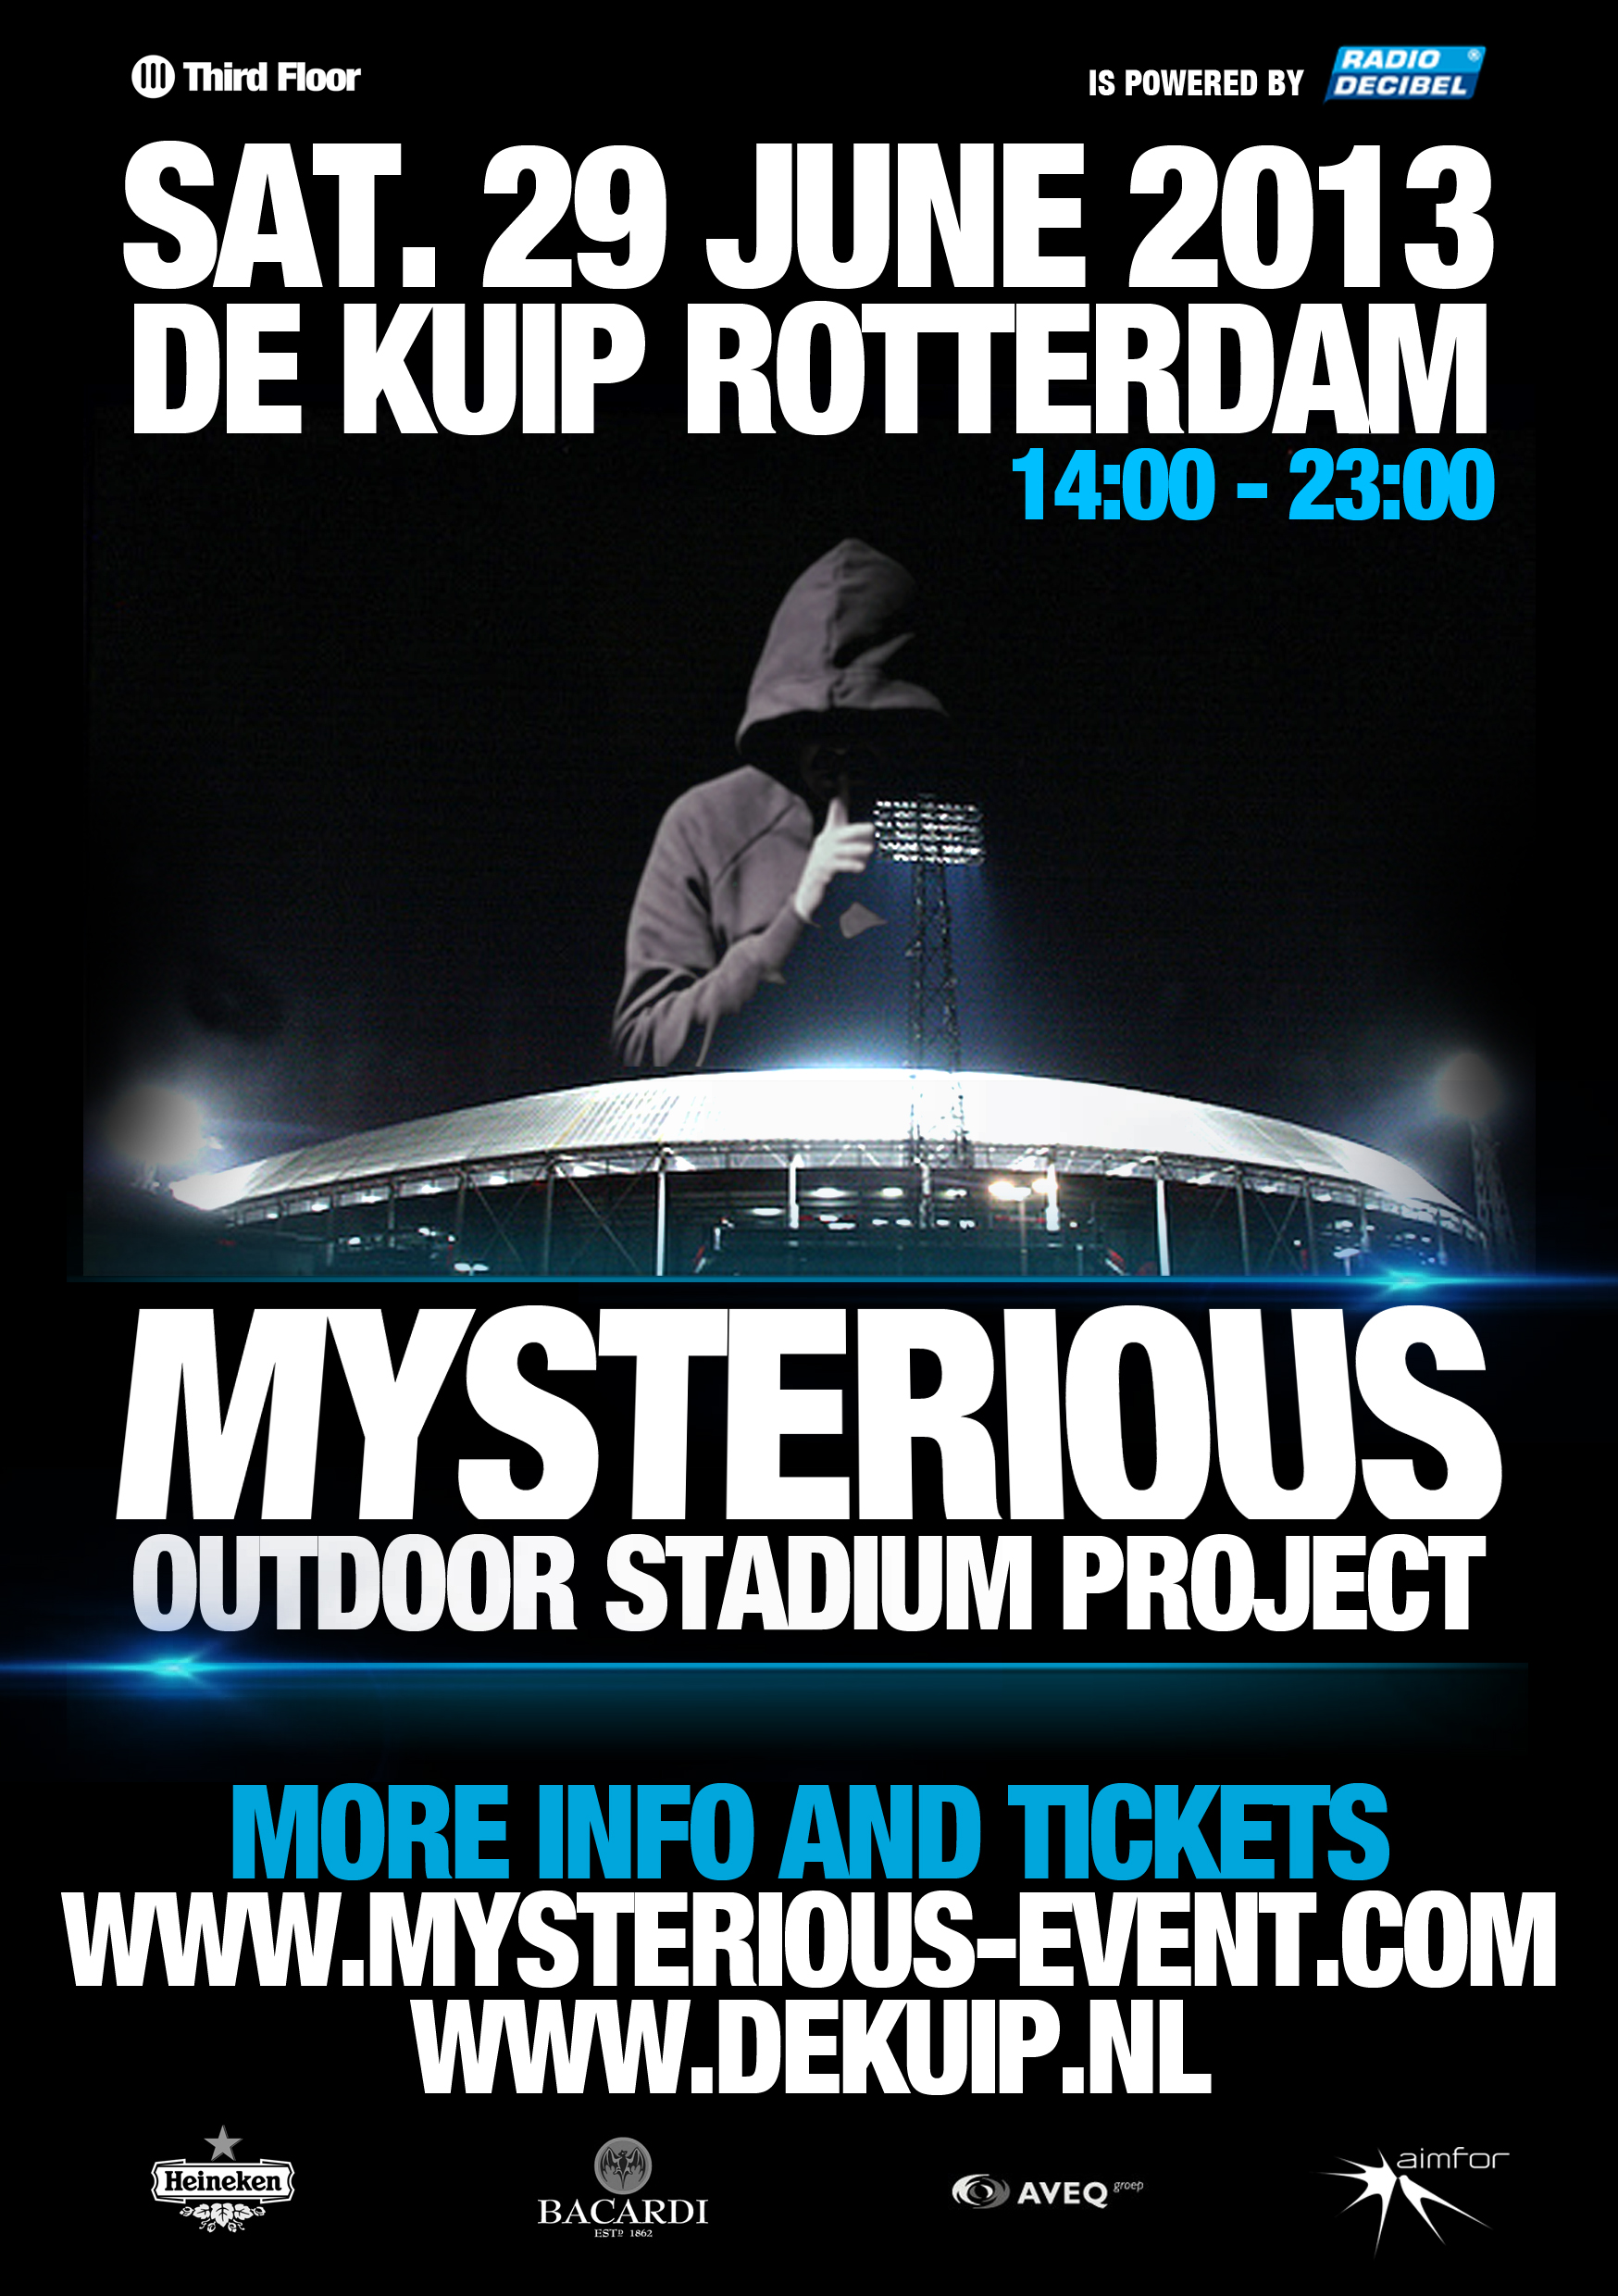 mysterious%20stadium%20project%20met%20logos